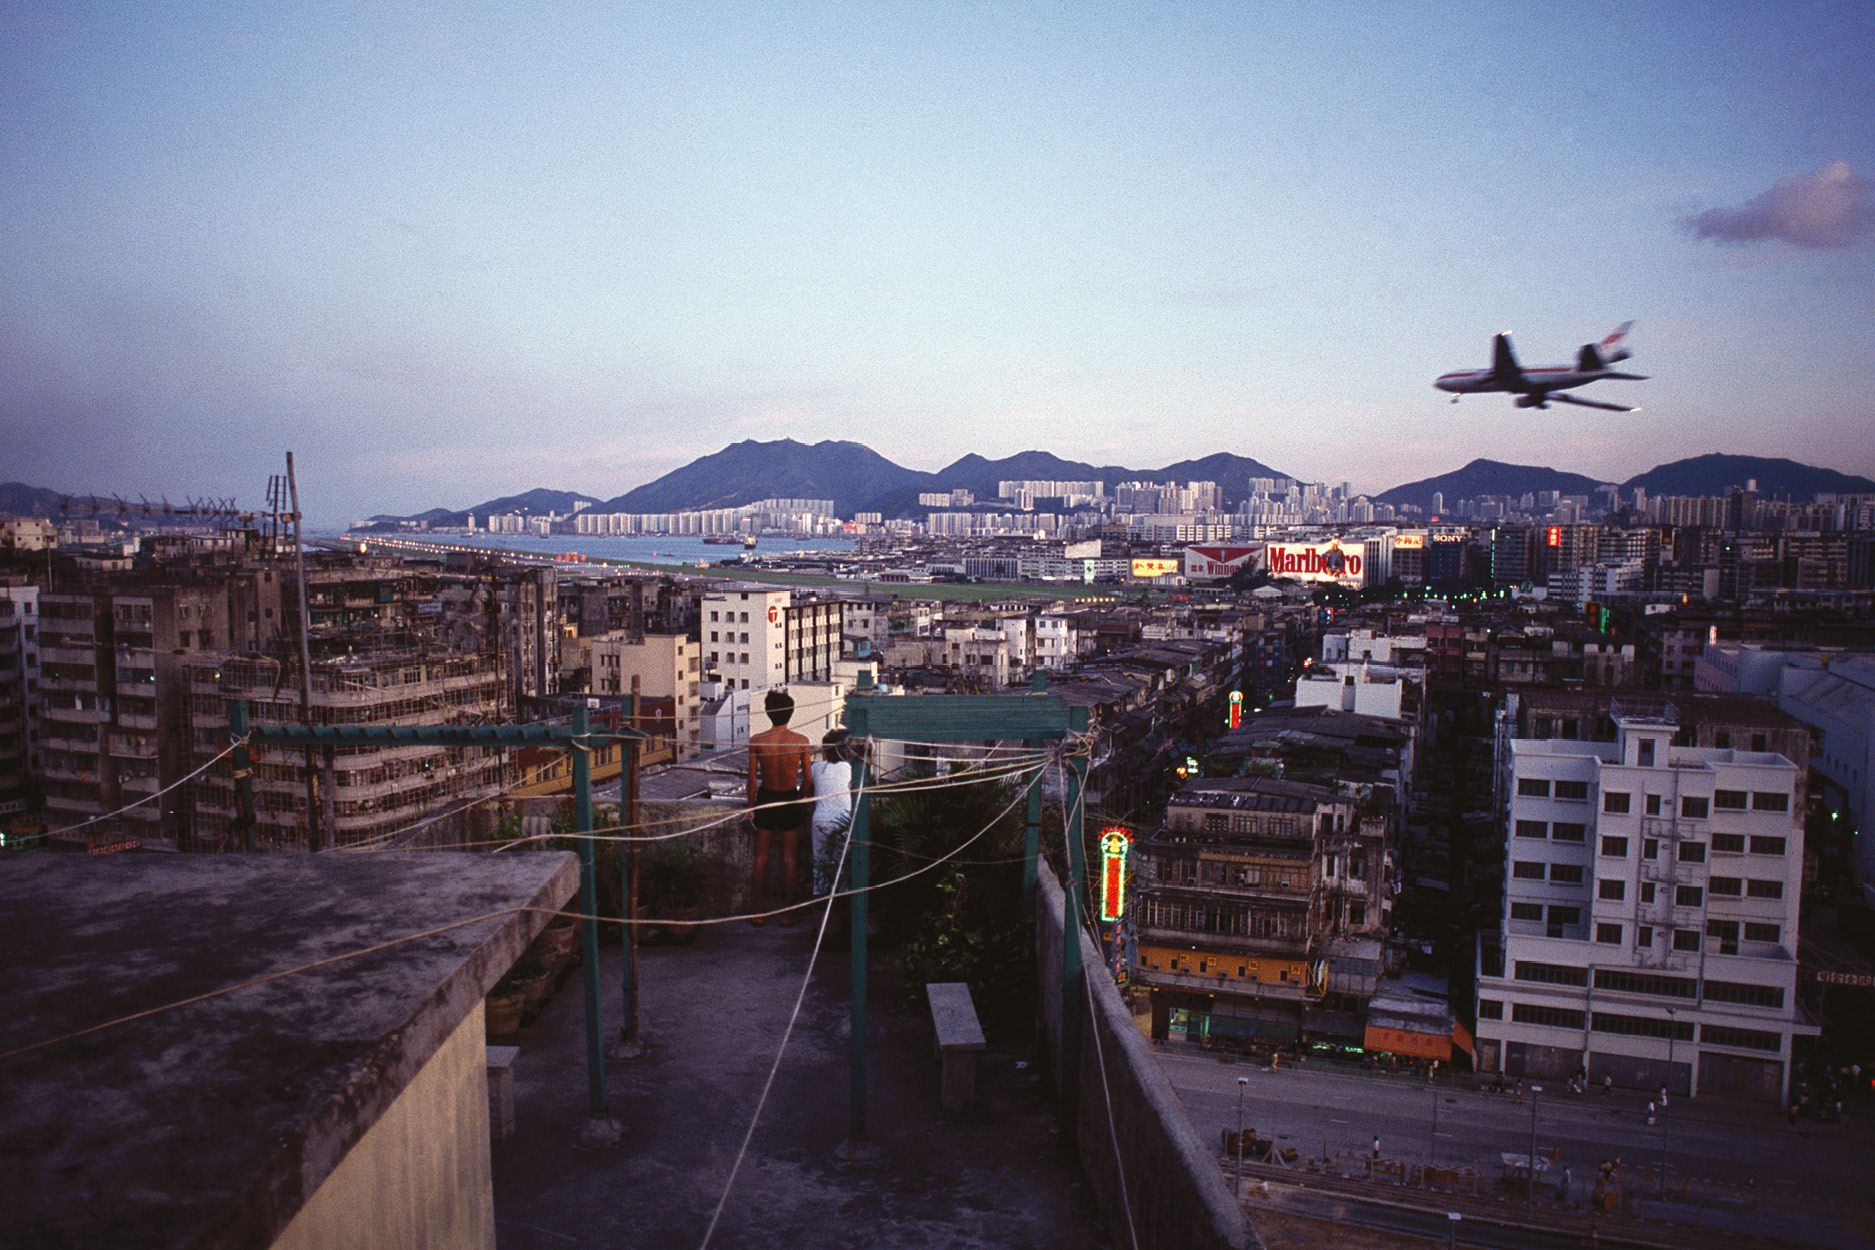 Rooftop and Plane (1989) (Photo: Courtesy of Greg Girard and Blue Lotus Gallery)